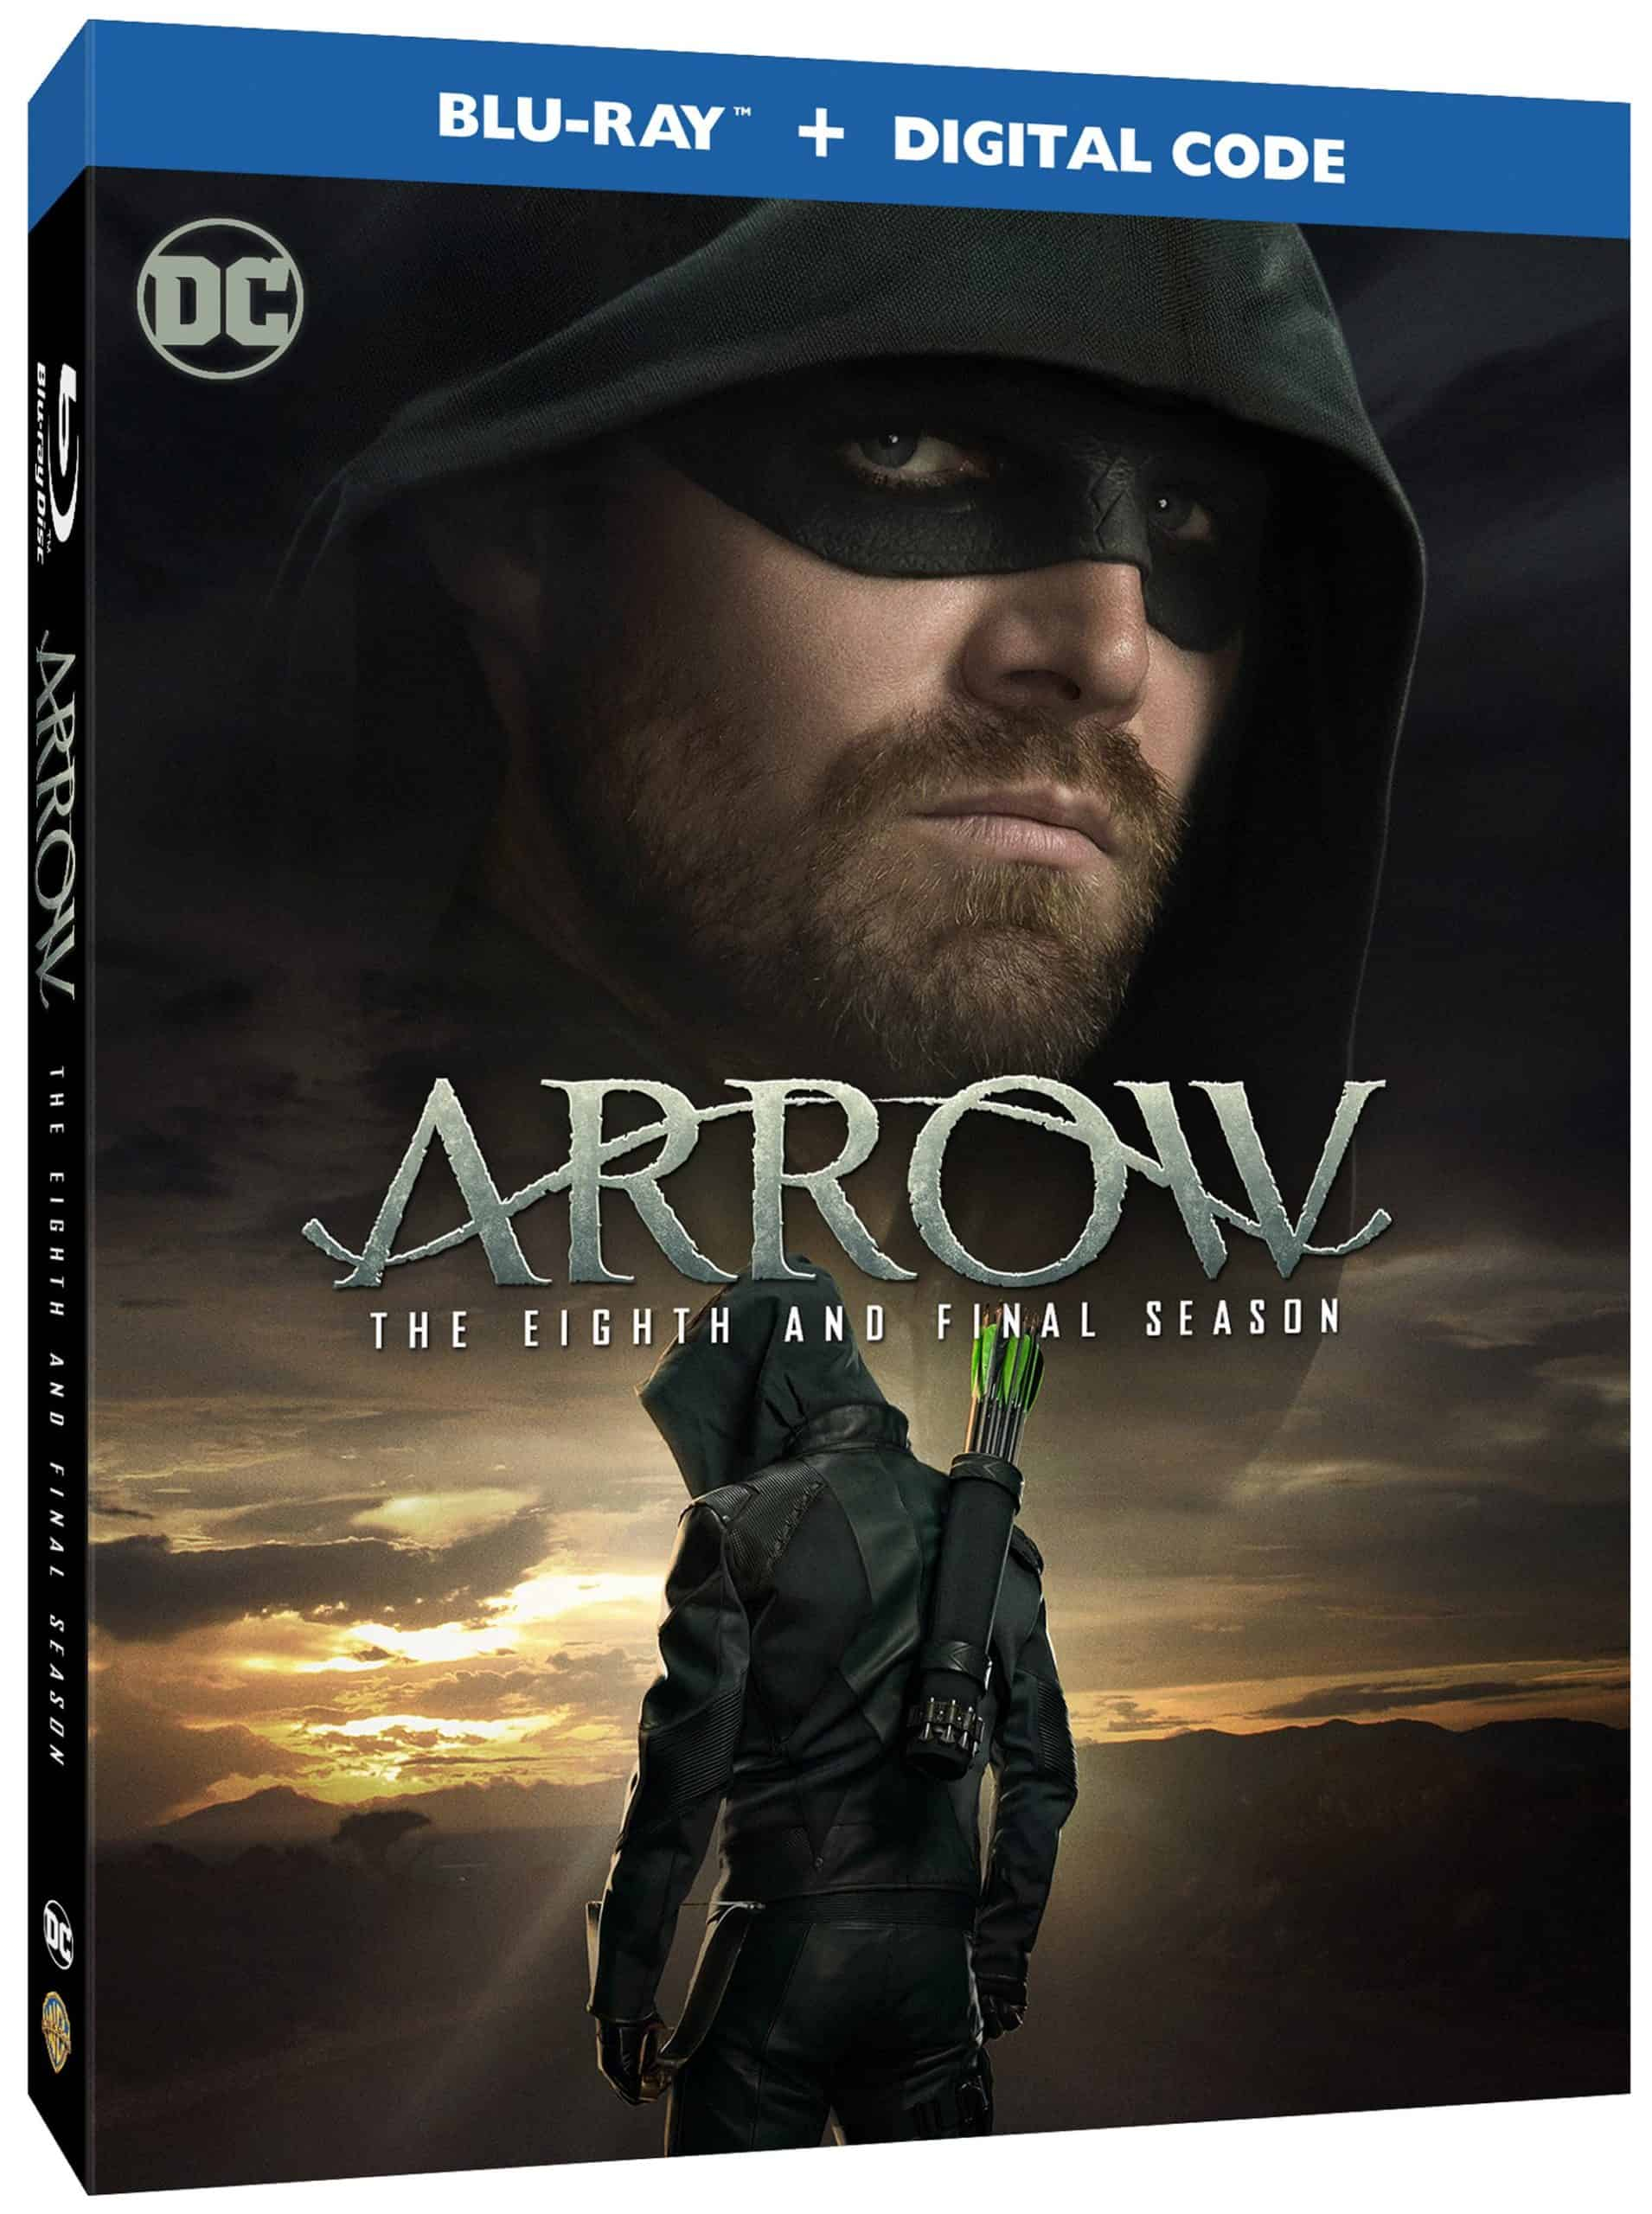 Arrow Blu-ray Season 8